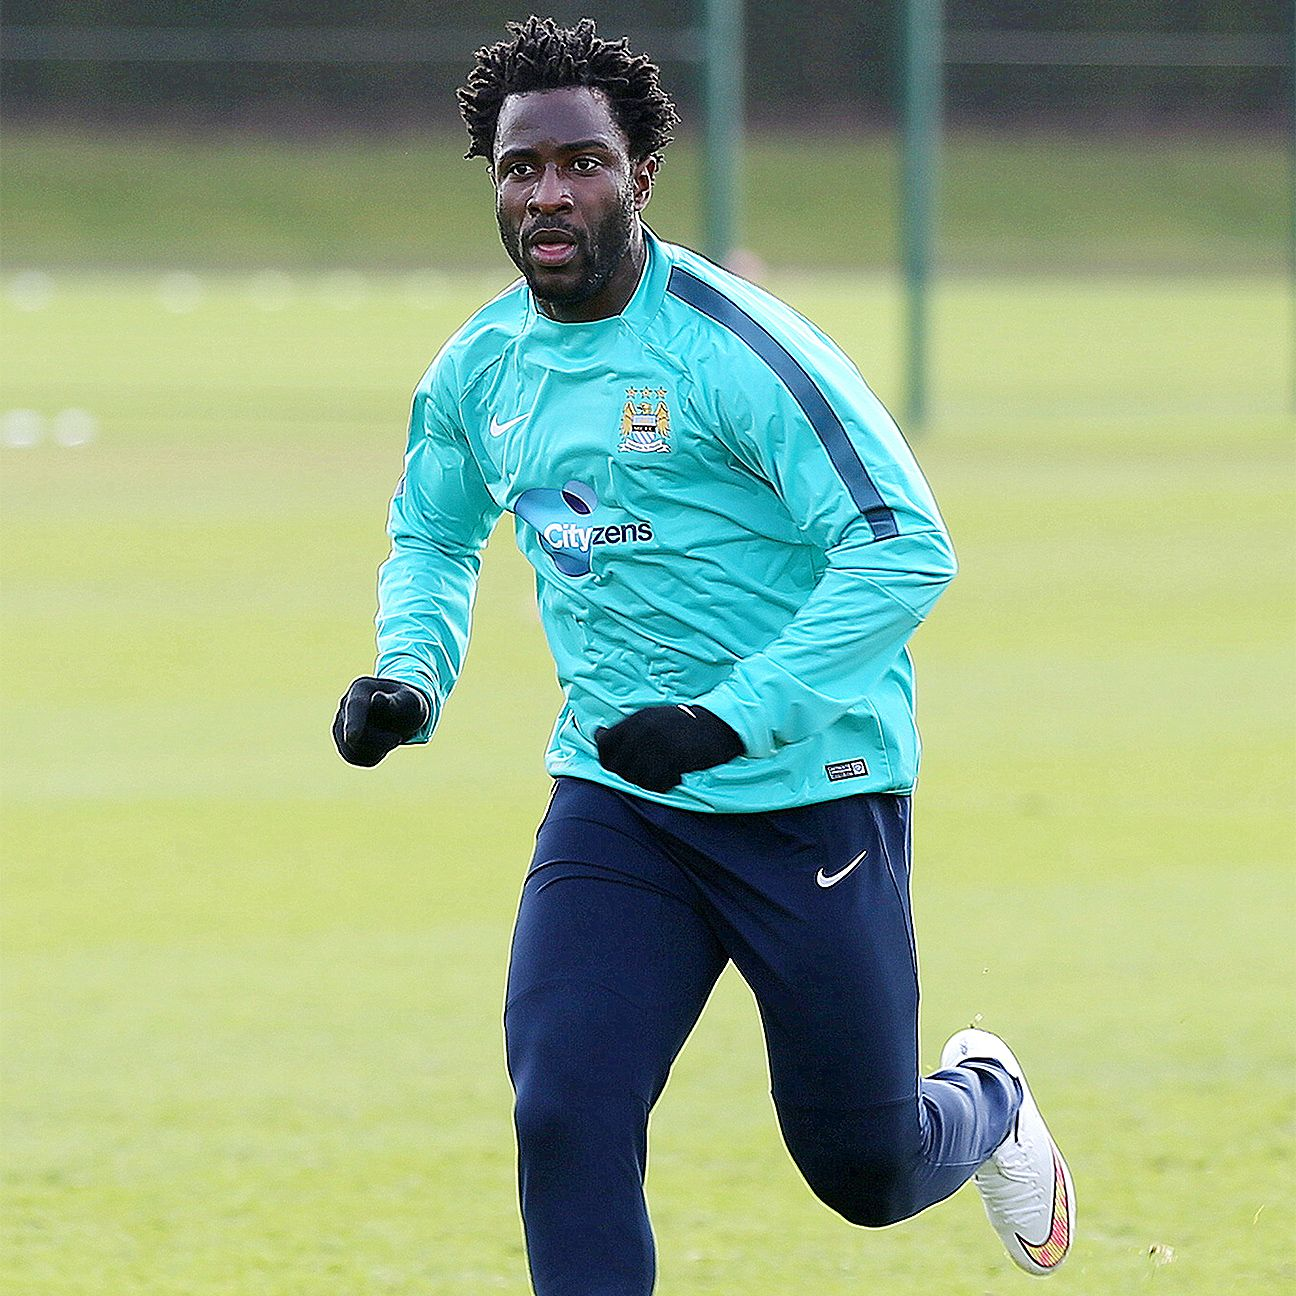 Wilfried Bony has yet to score for Manchester City in 2015-16.